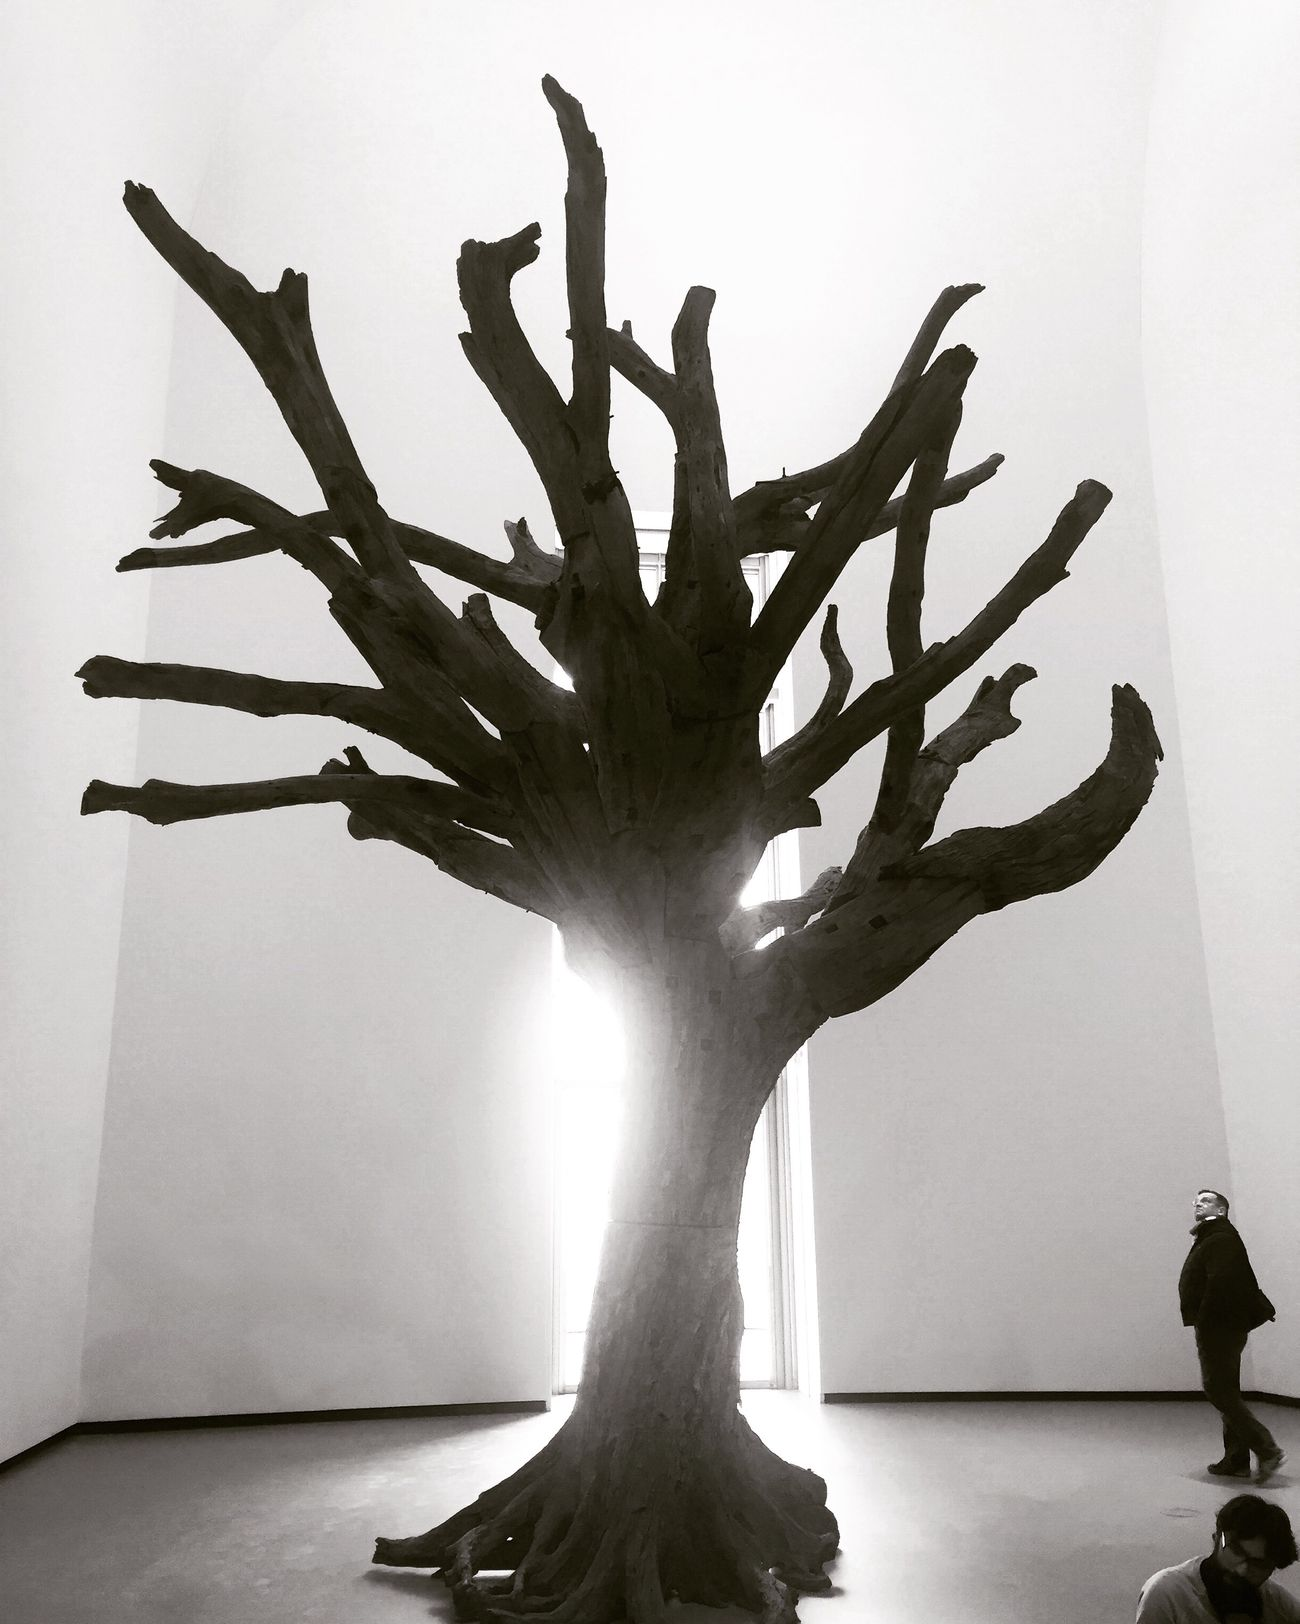 Art People Watching People And Art Art Inspection Sculpture Trees Tree TreePorn Fondation Louis Vuitton  Blackandwhite Black And White Blackandwhite Photography Black & White Light Ai Weiwei